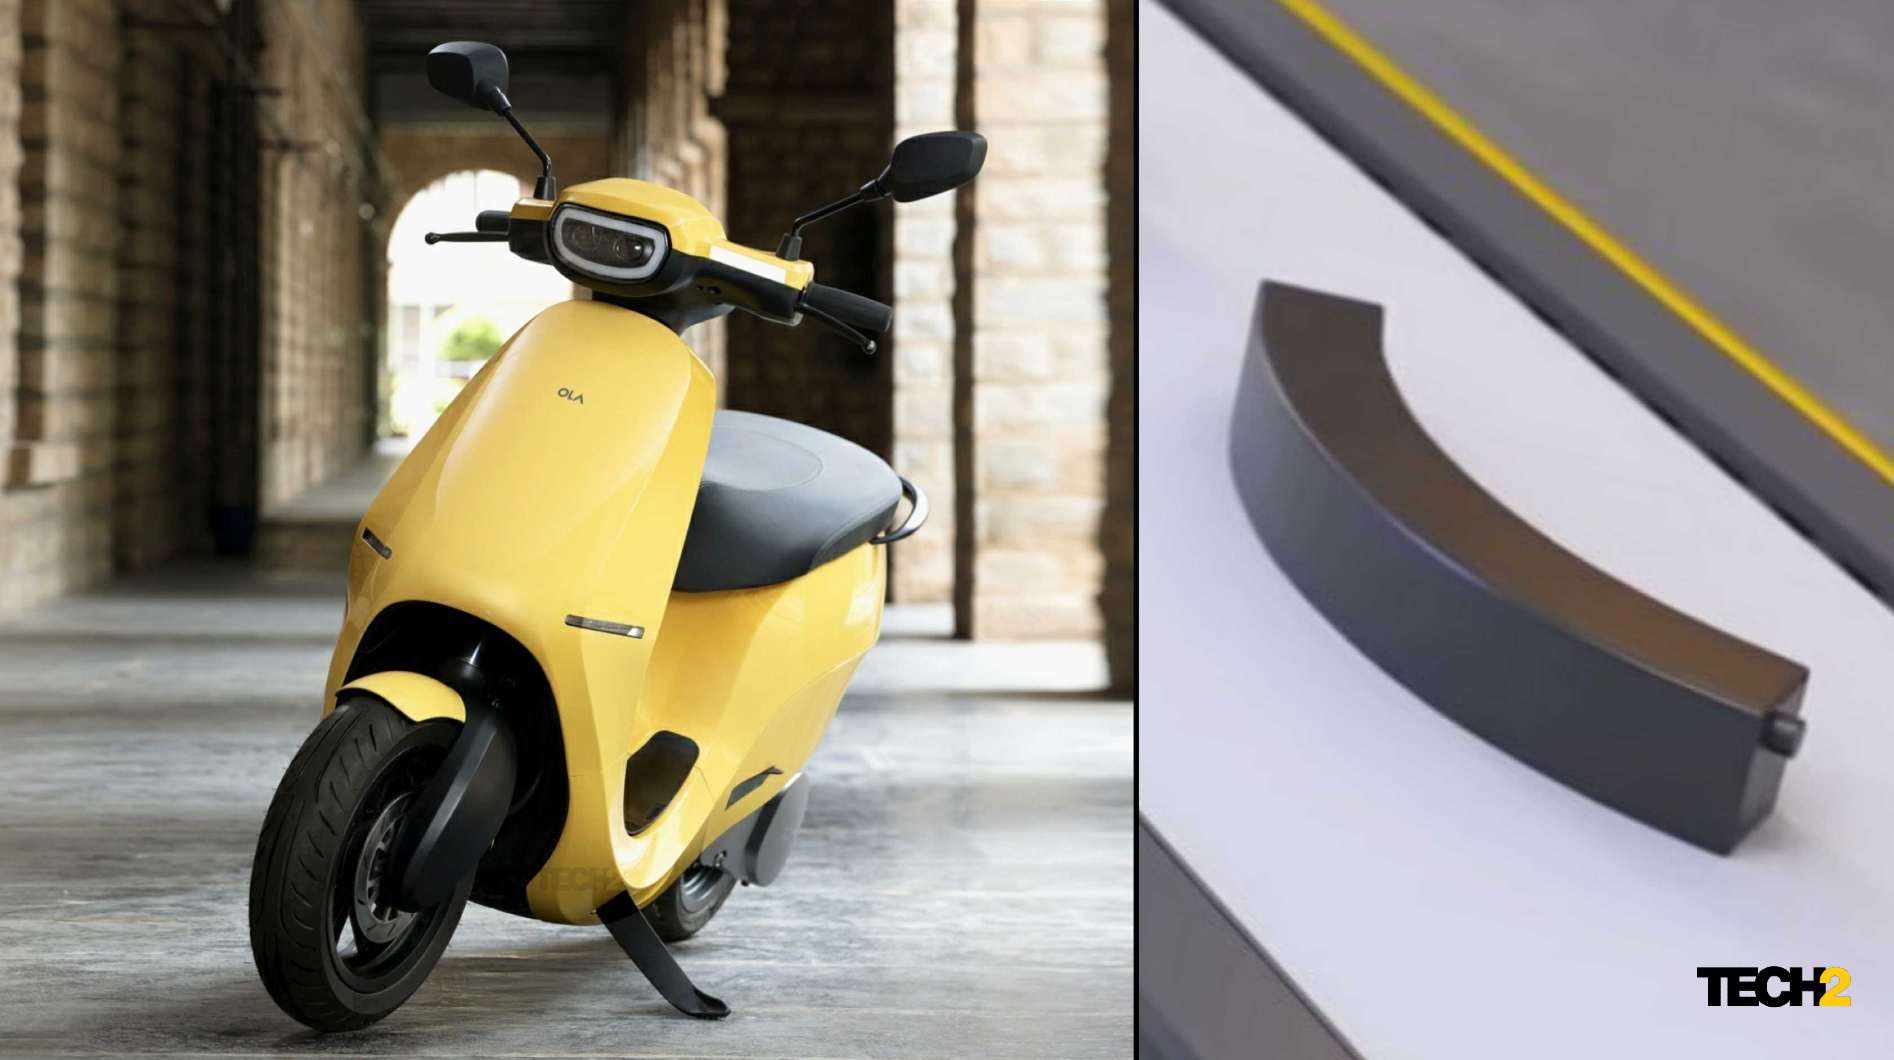 Ola Electric scooter is eligible for massive FAME-II support of more than 50,000 rubles - Technology News, Firstpost